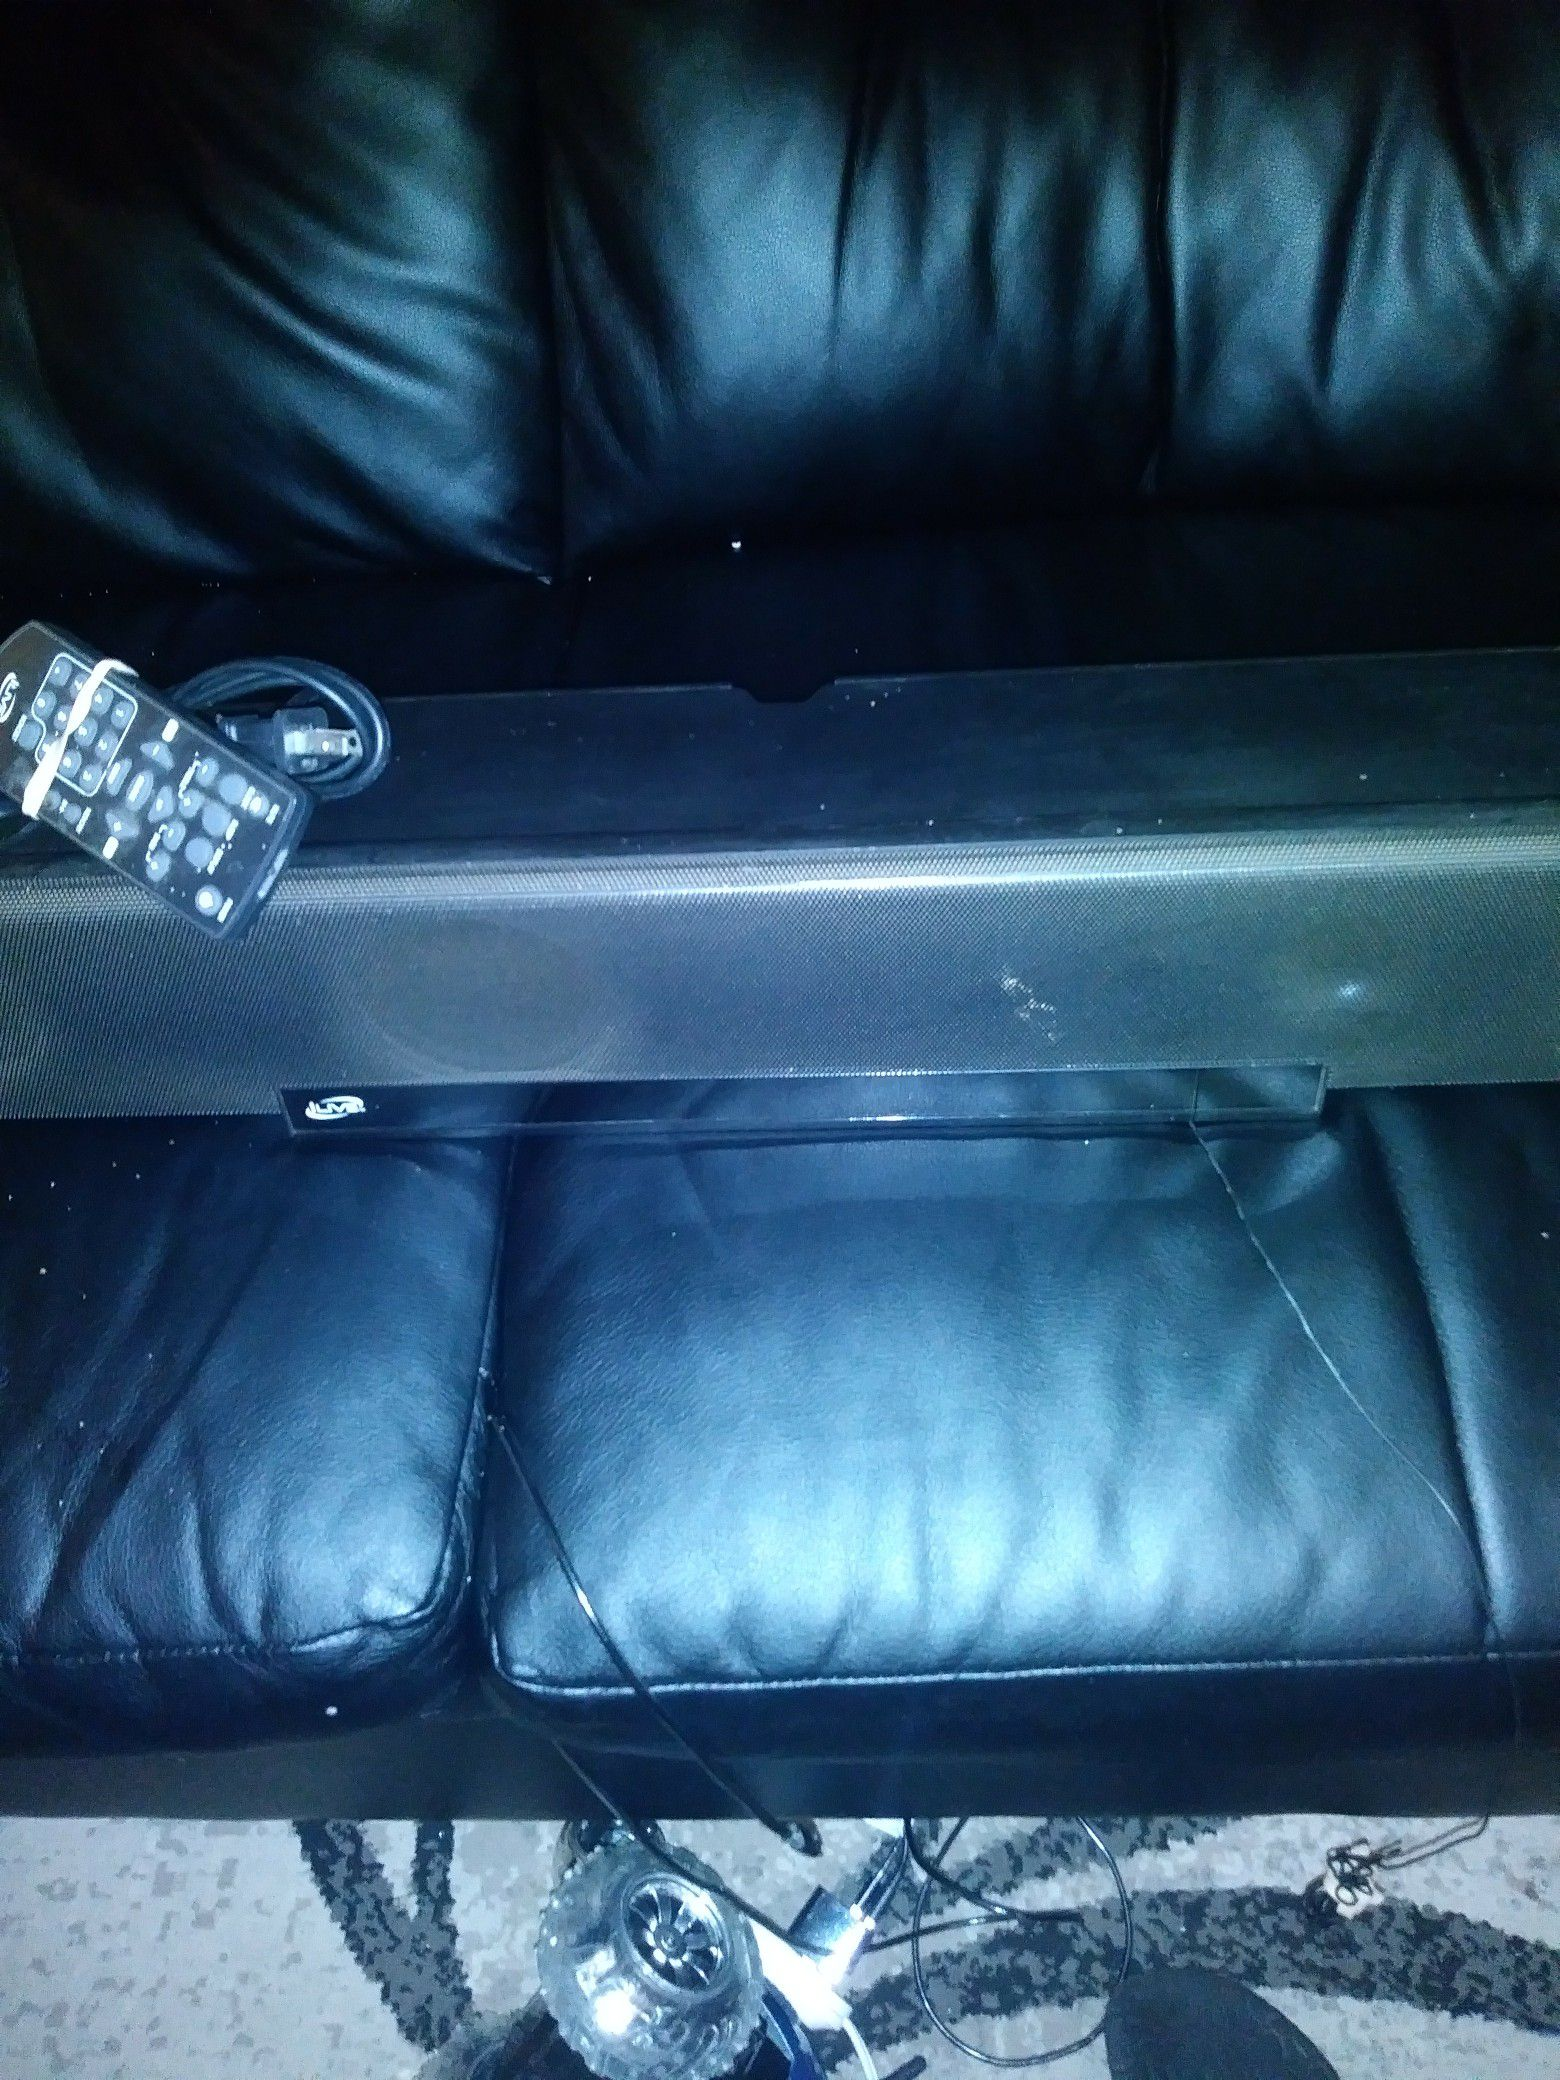 Sound bar with remote and AUX and radio outlet